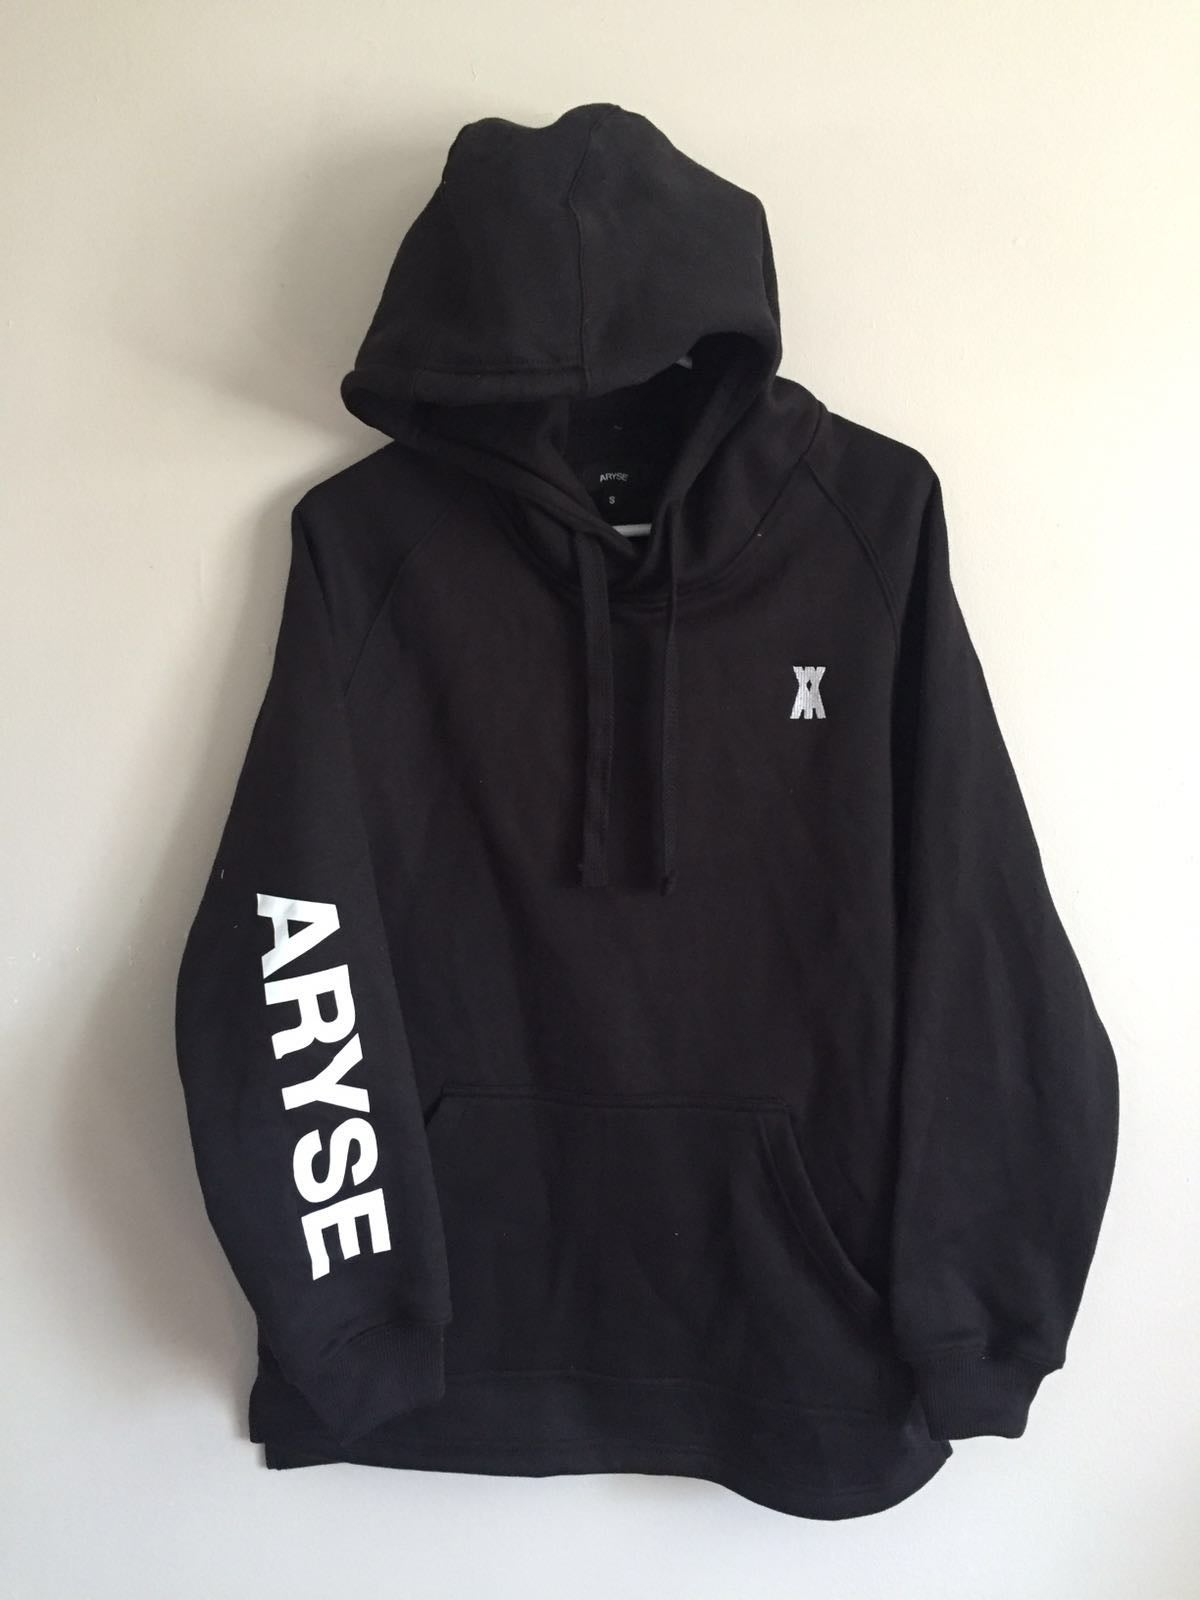 Image of Untitled Hoodie - Black